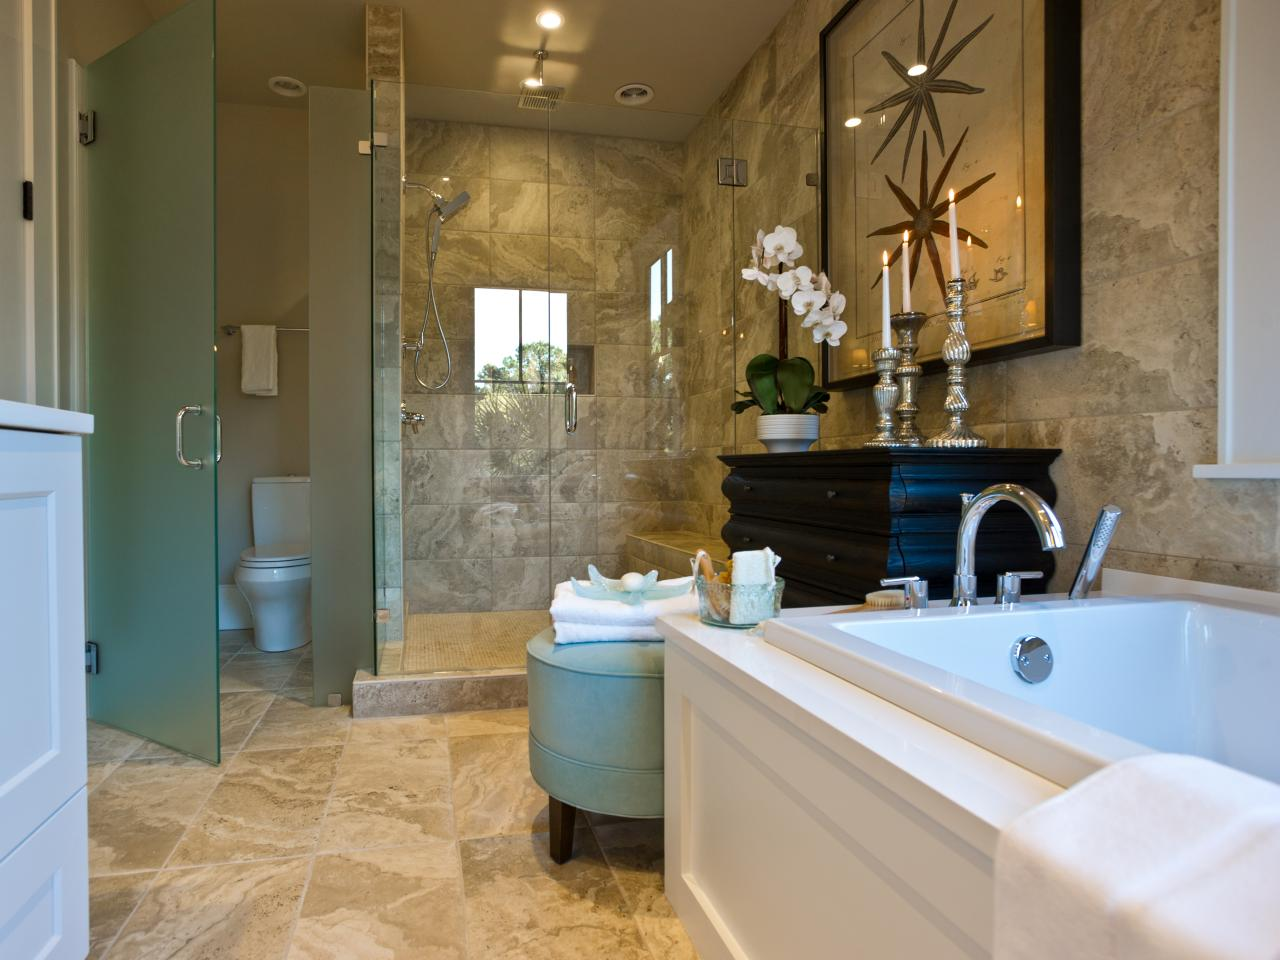 Hgtv dream home 2013 master bathroom pictures and video for Bathroom closet remodel